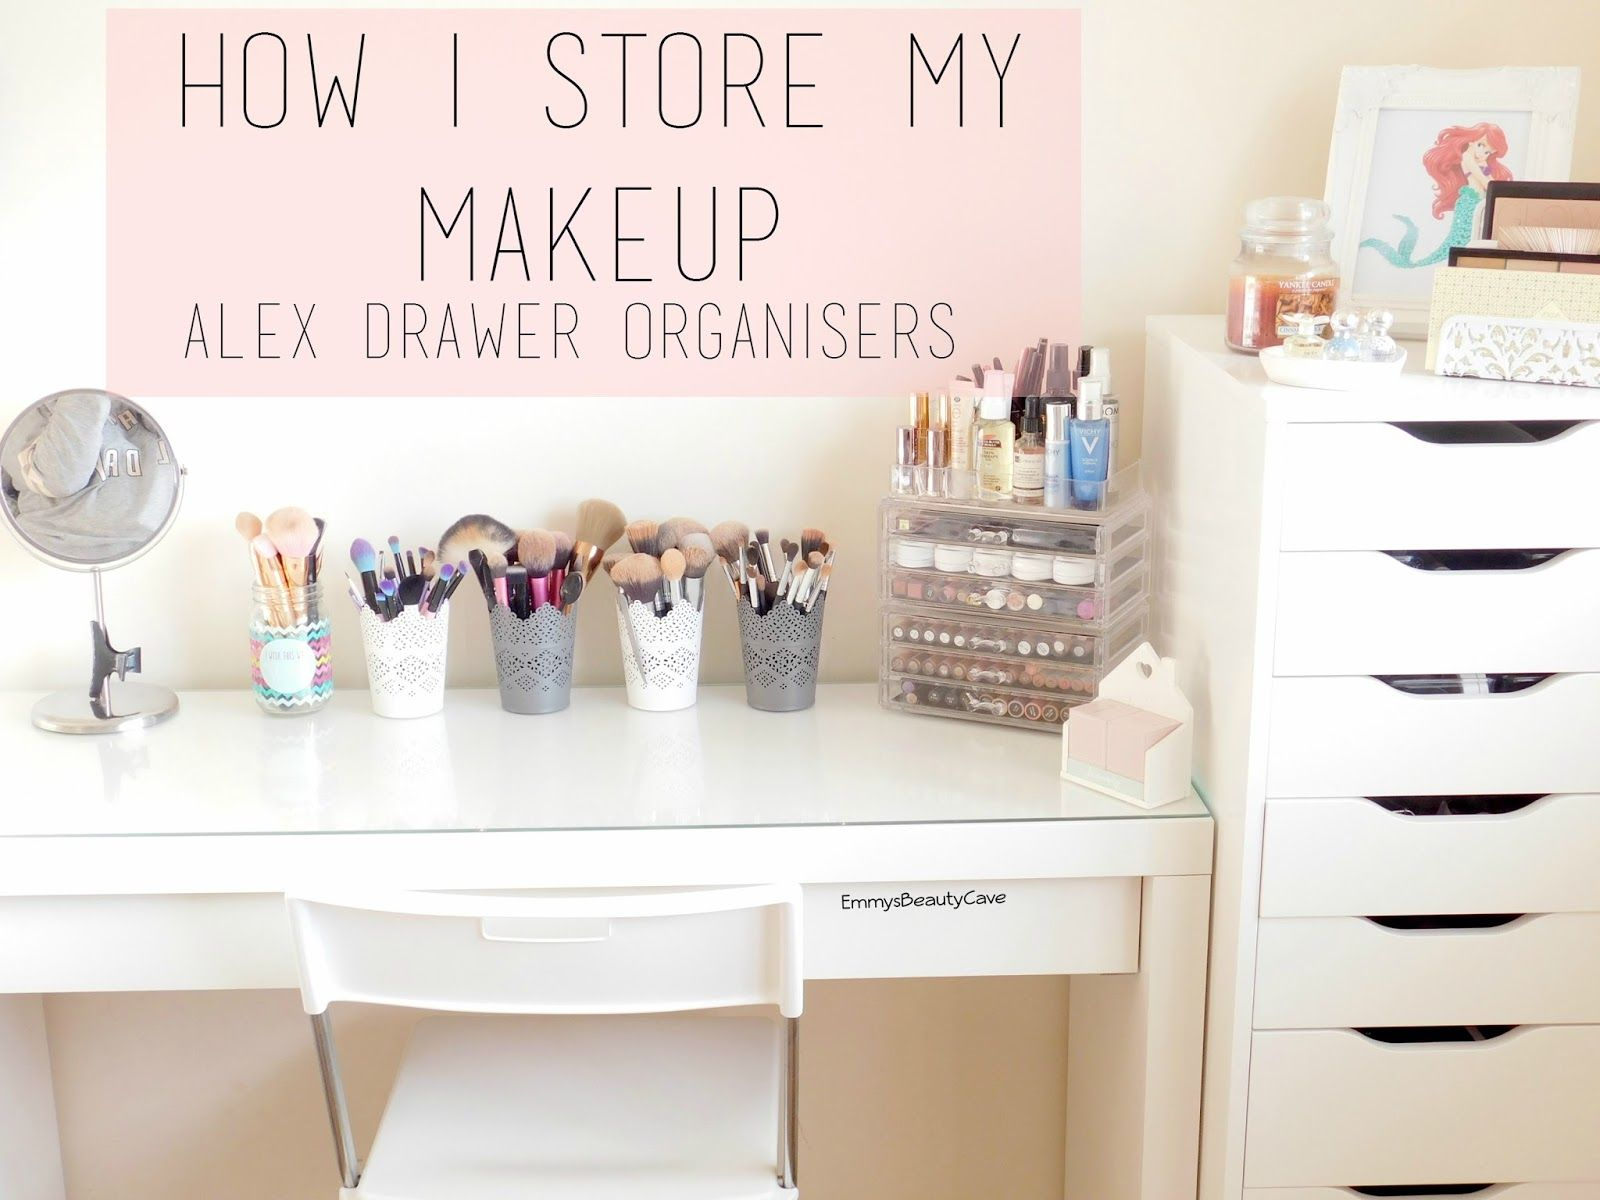 Awesome Makeup Storage Ikea Alex Drawers, Ikea Malm Dressing Table, Alex Drawer  Organisers, Makeup